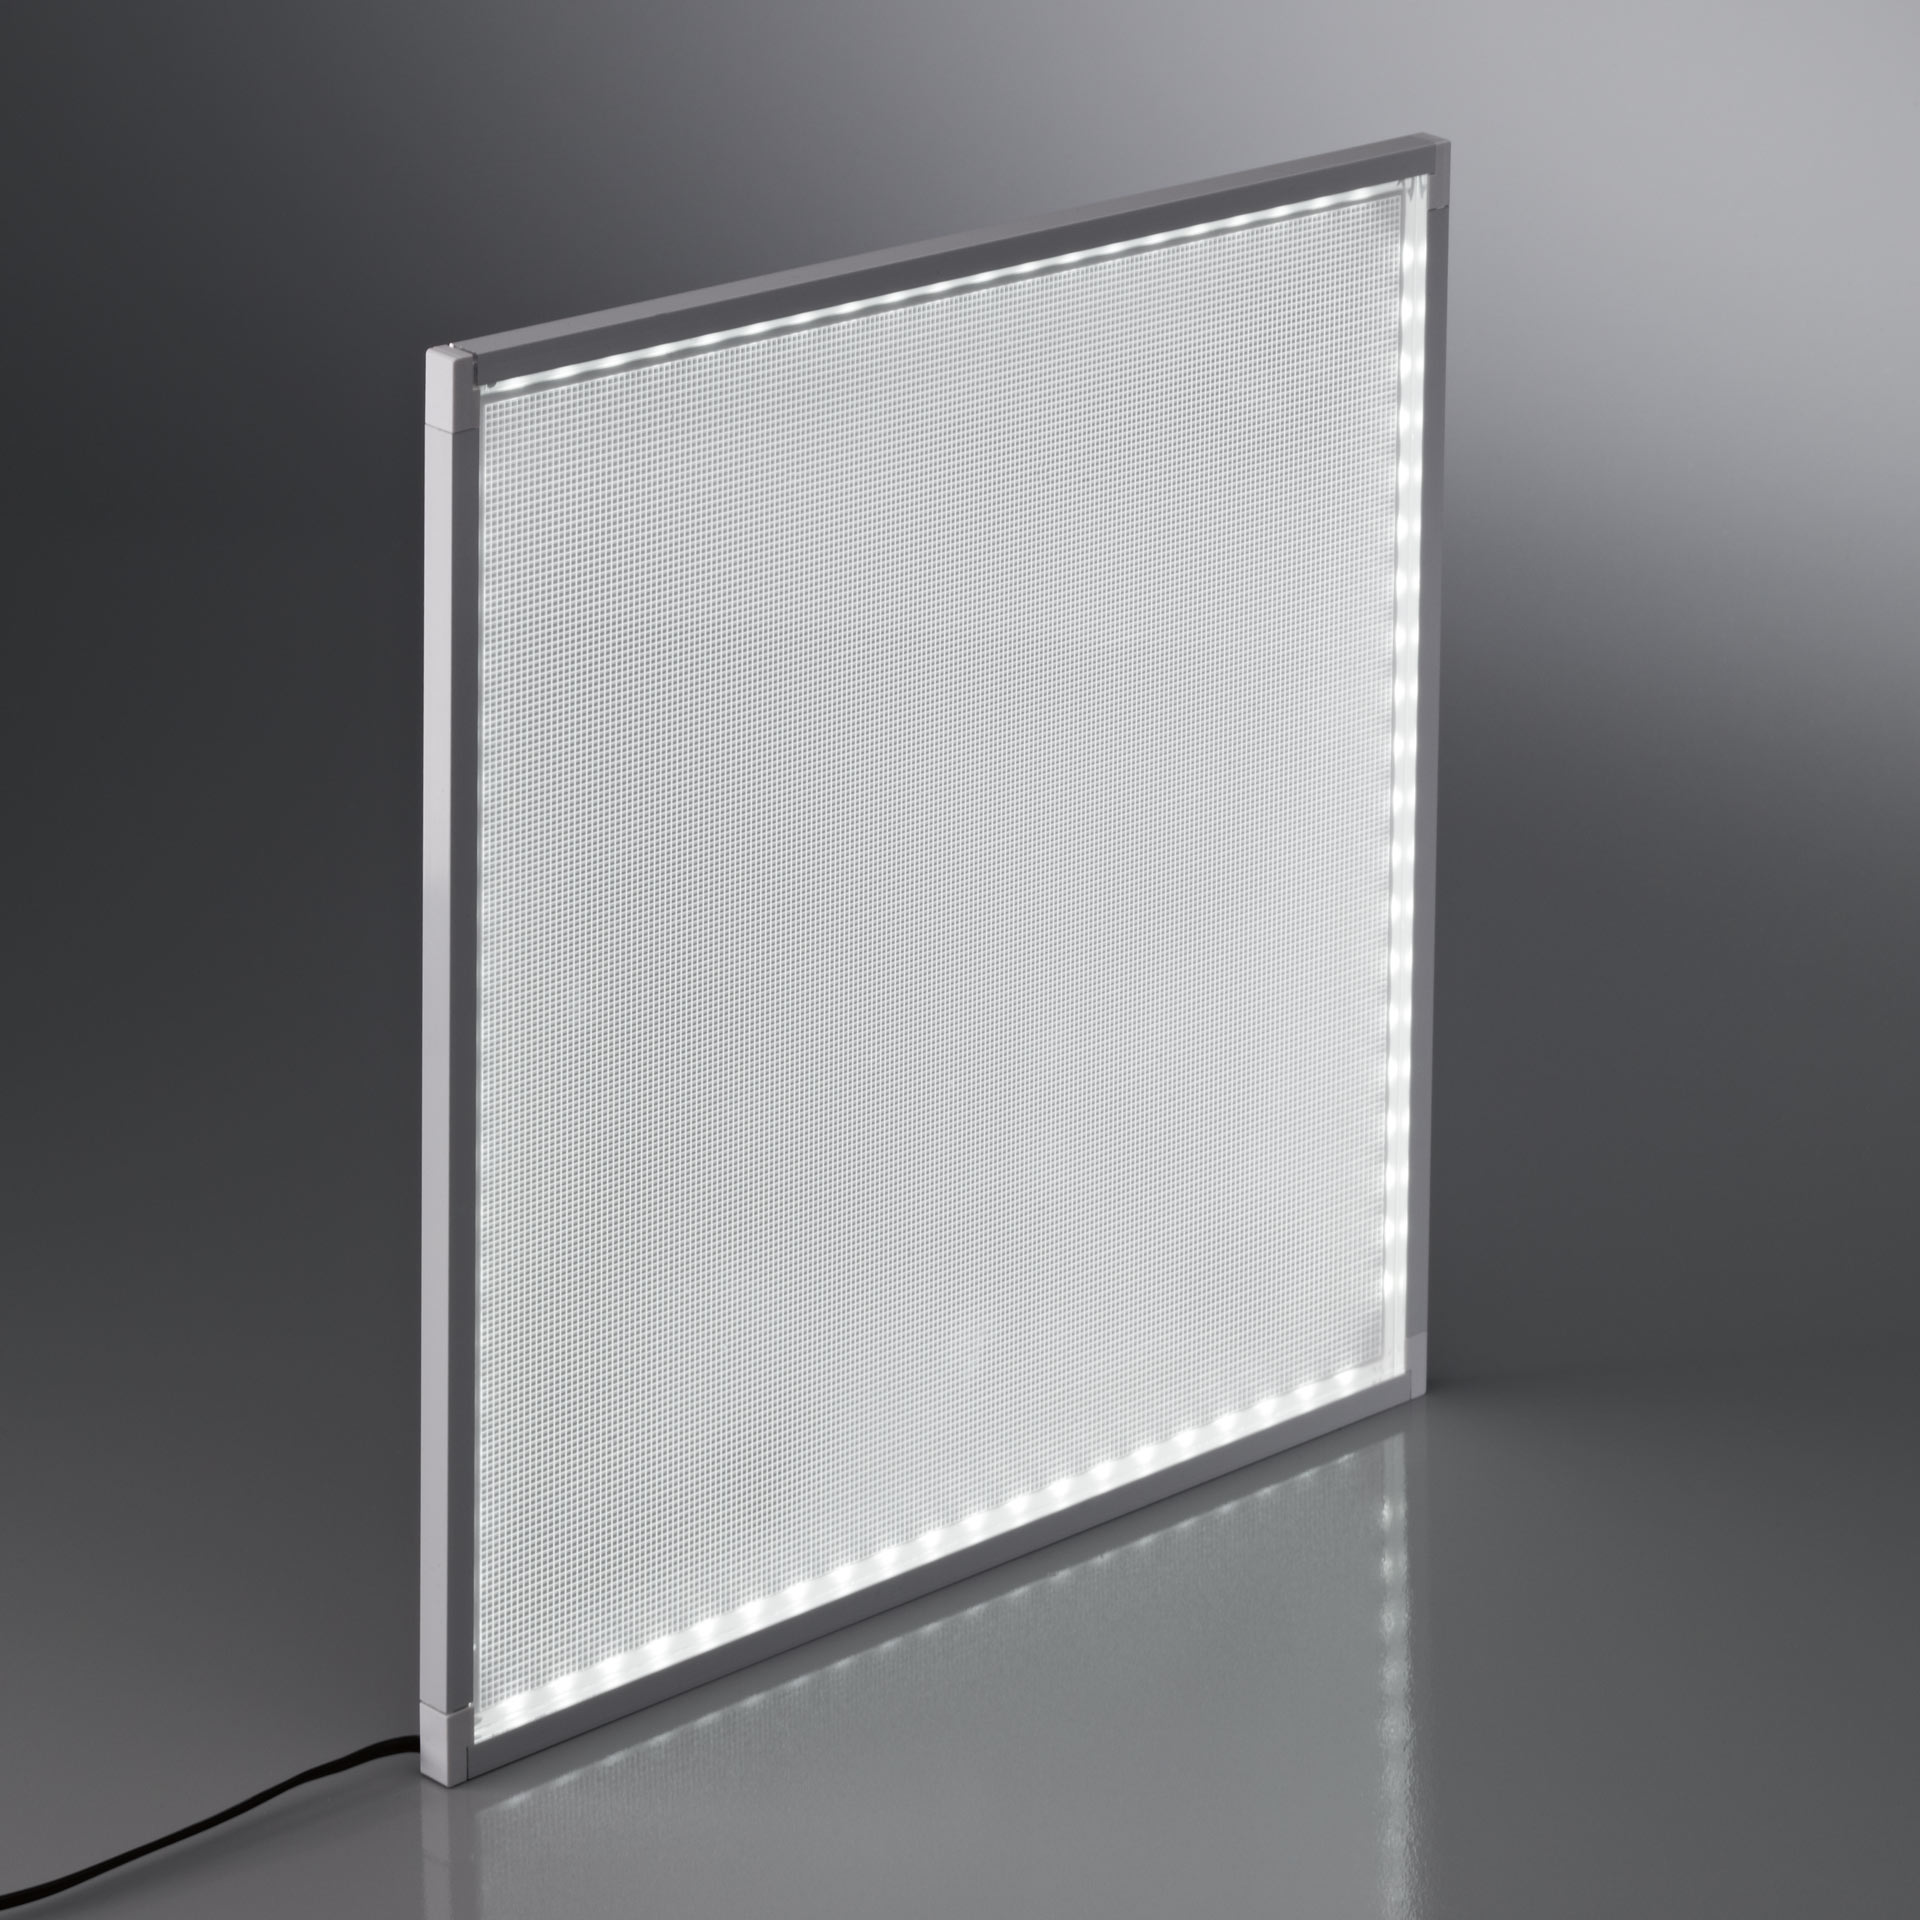 LED Light Board 8 mm